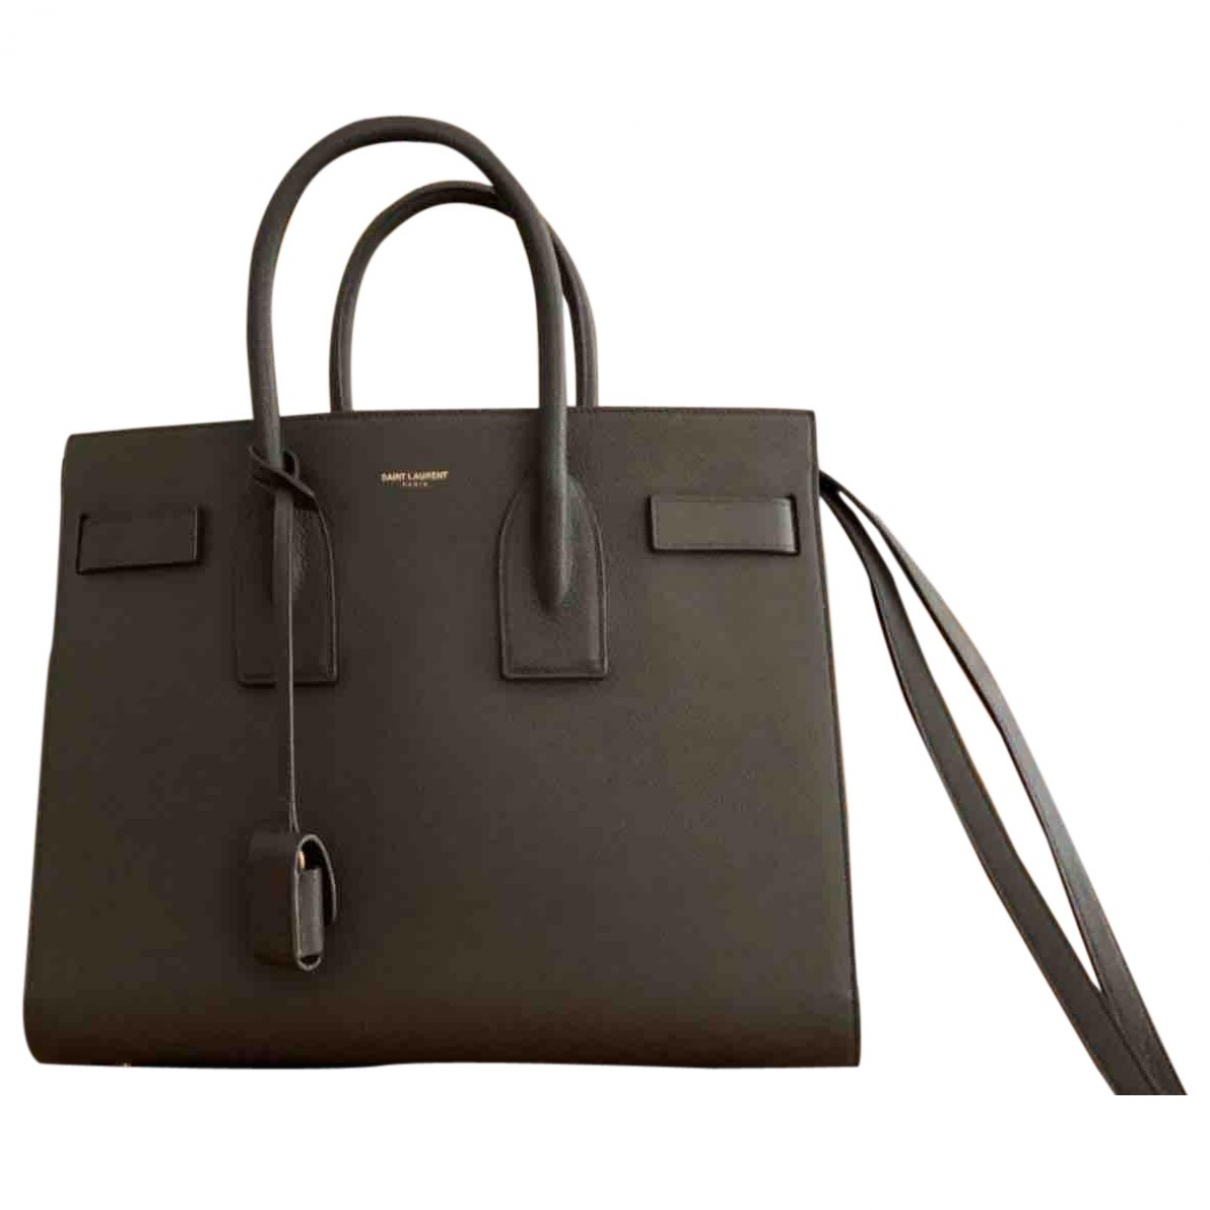 Saint Laurent Sac de Jour Khaki Leather handbag for Women \N